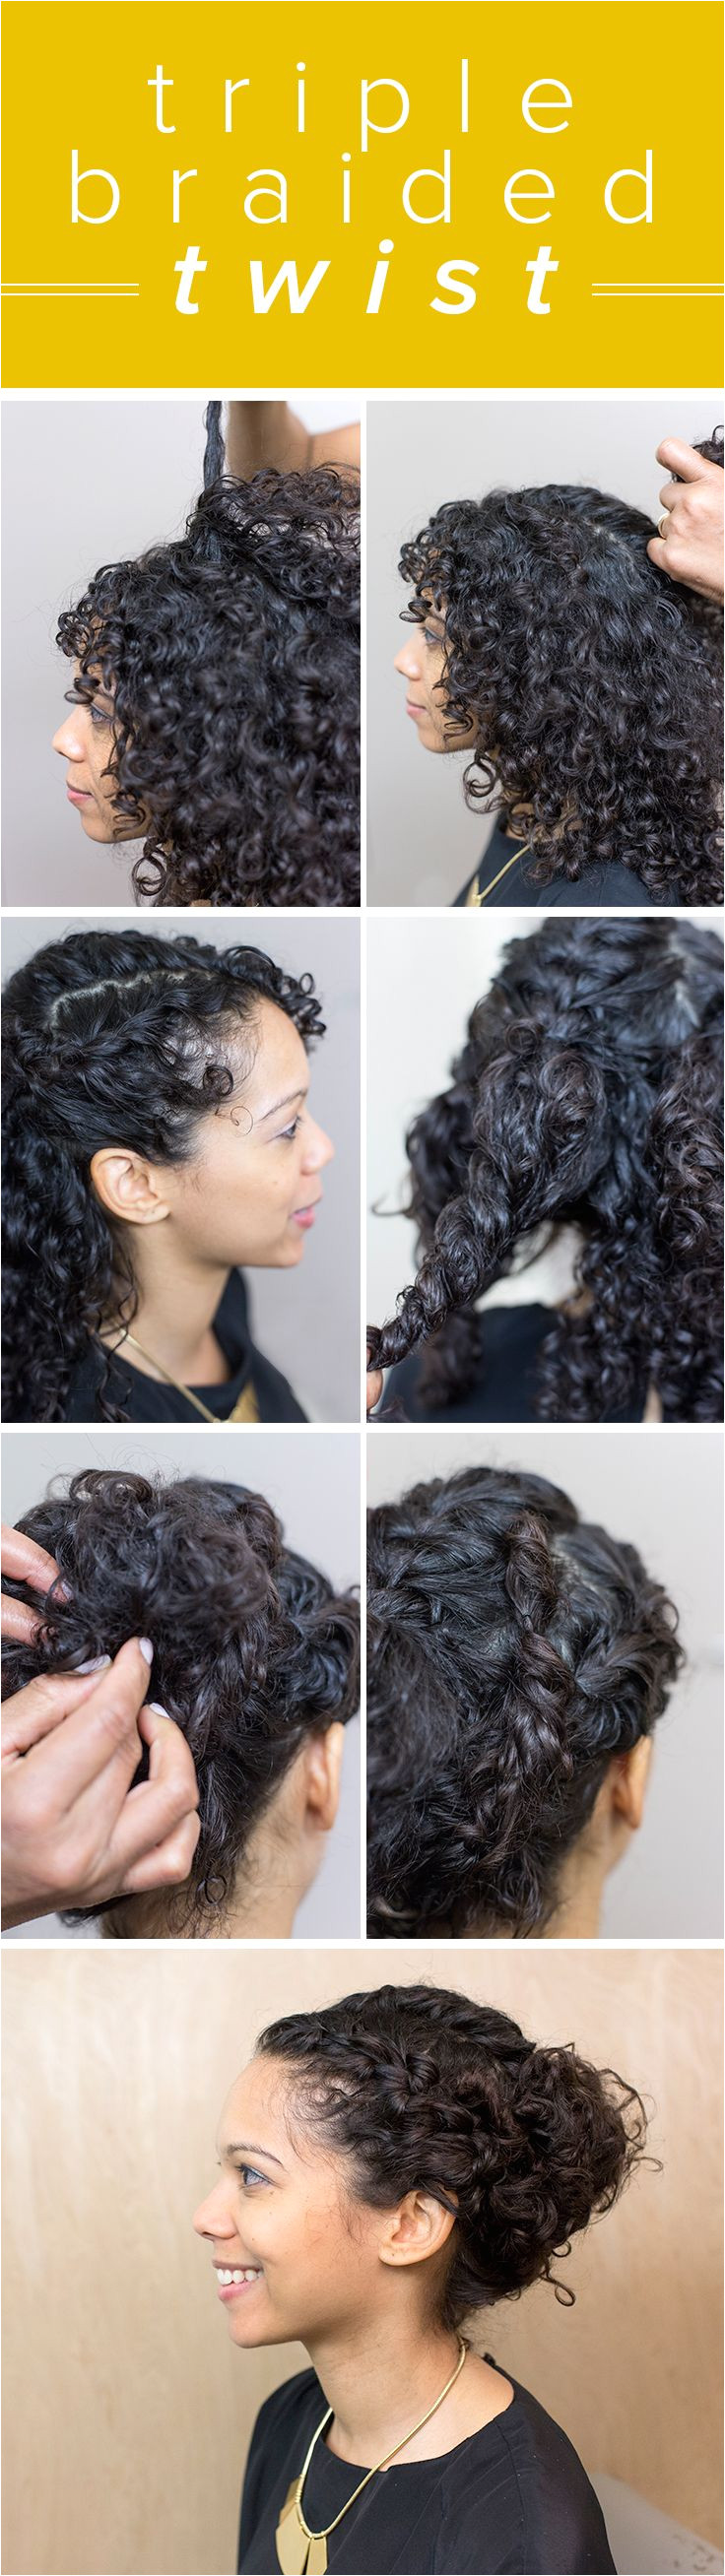 Embrace your curls with a triple braid twist This elegant braided updo is perfect for